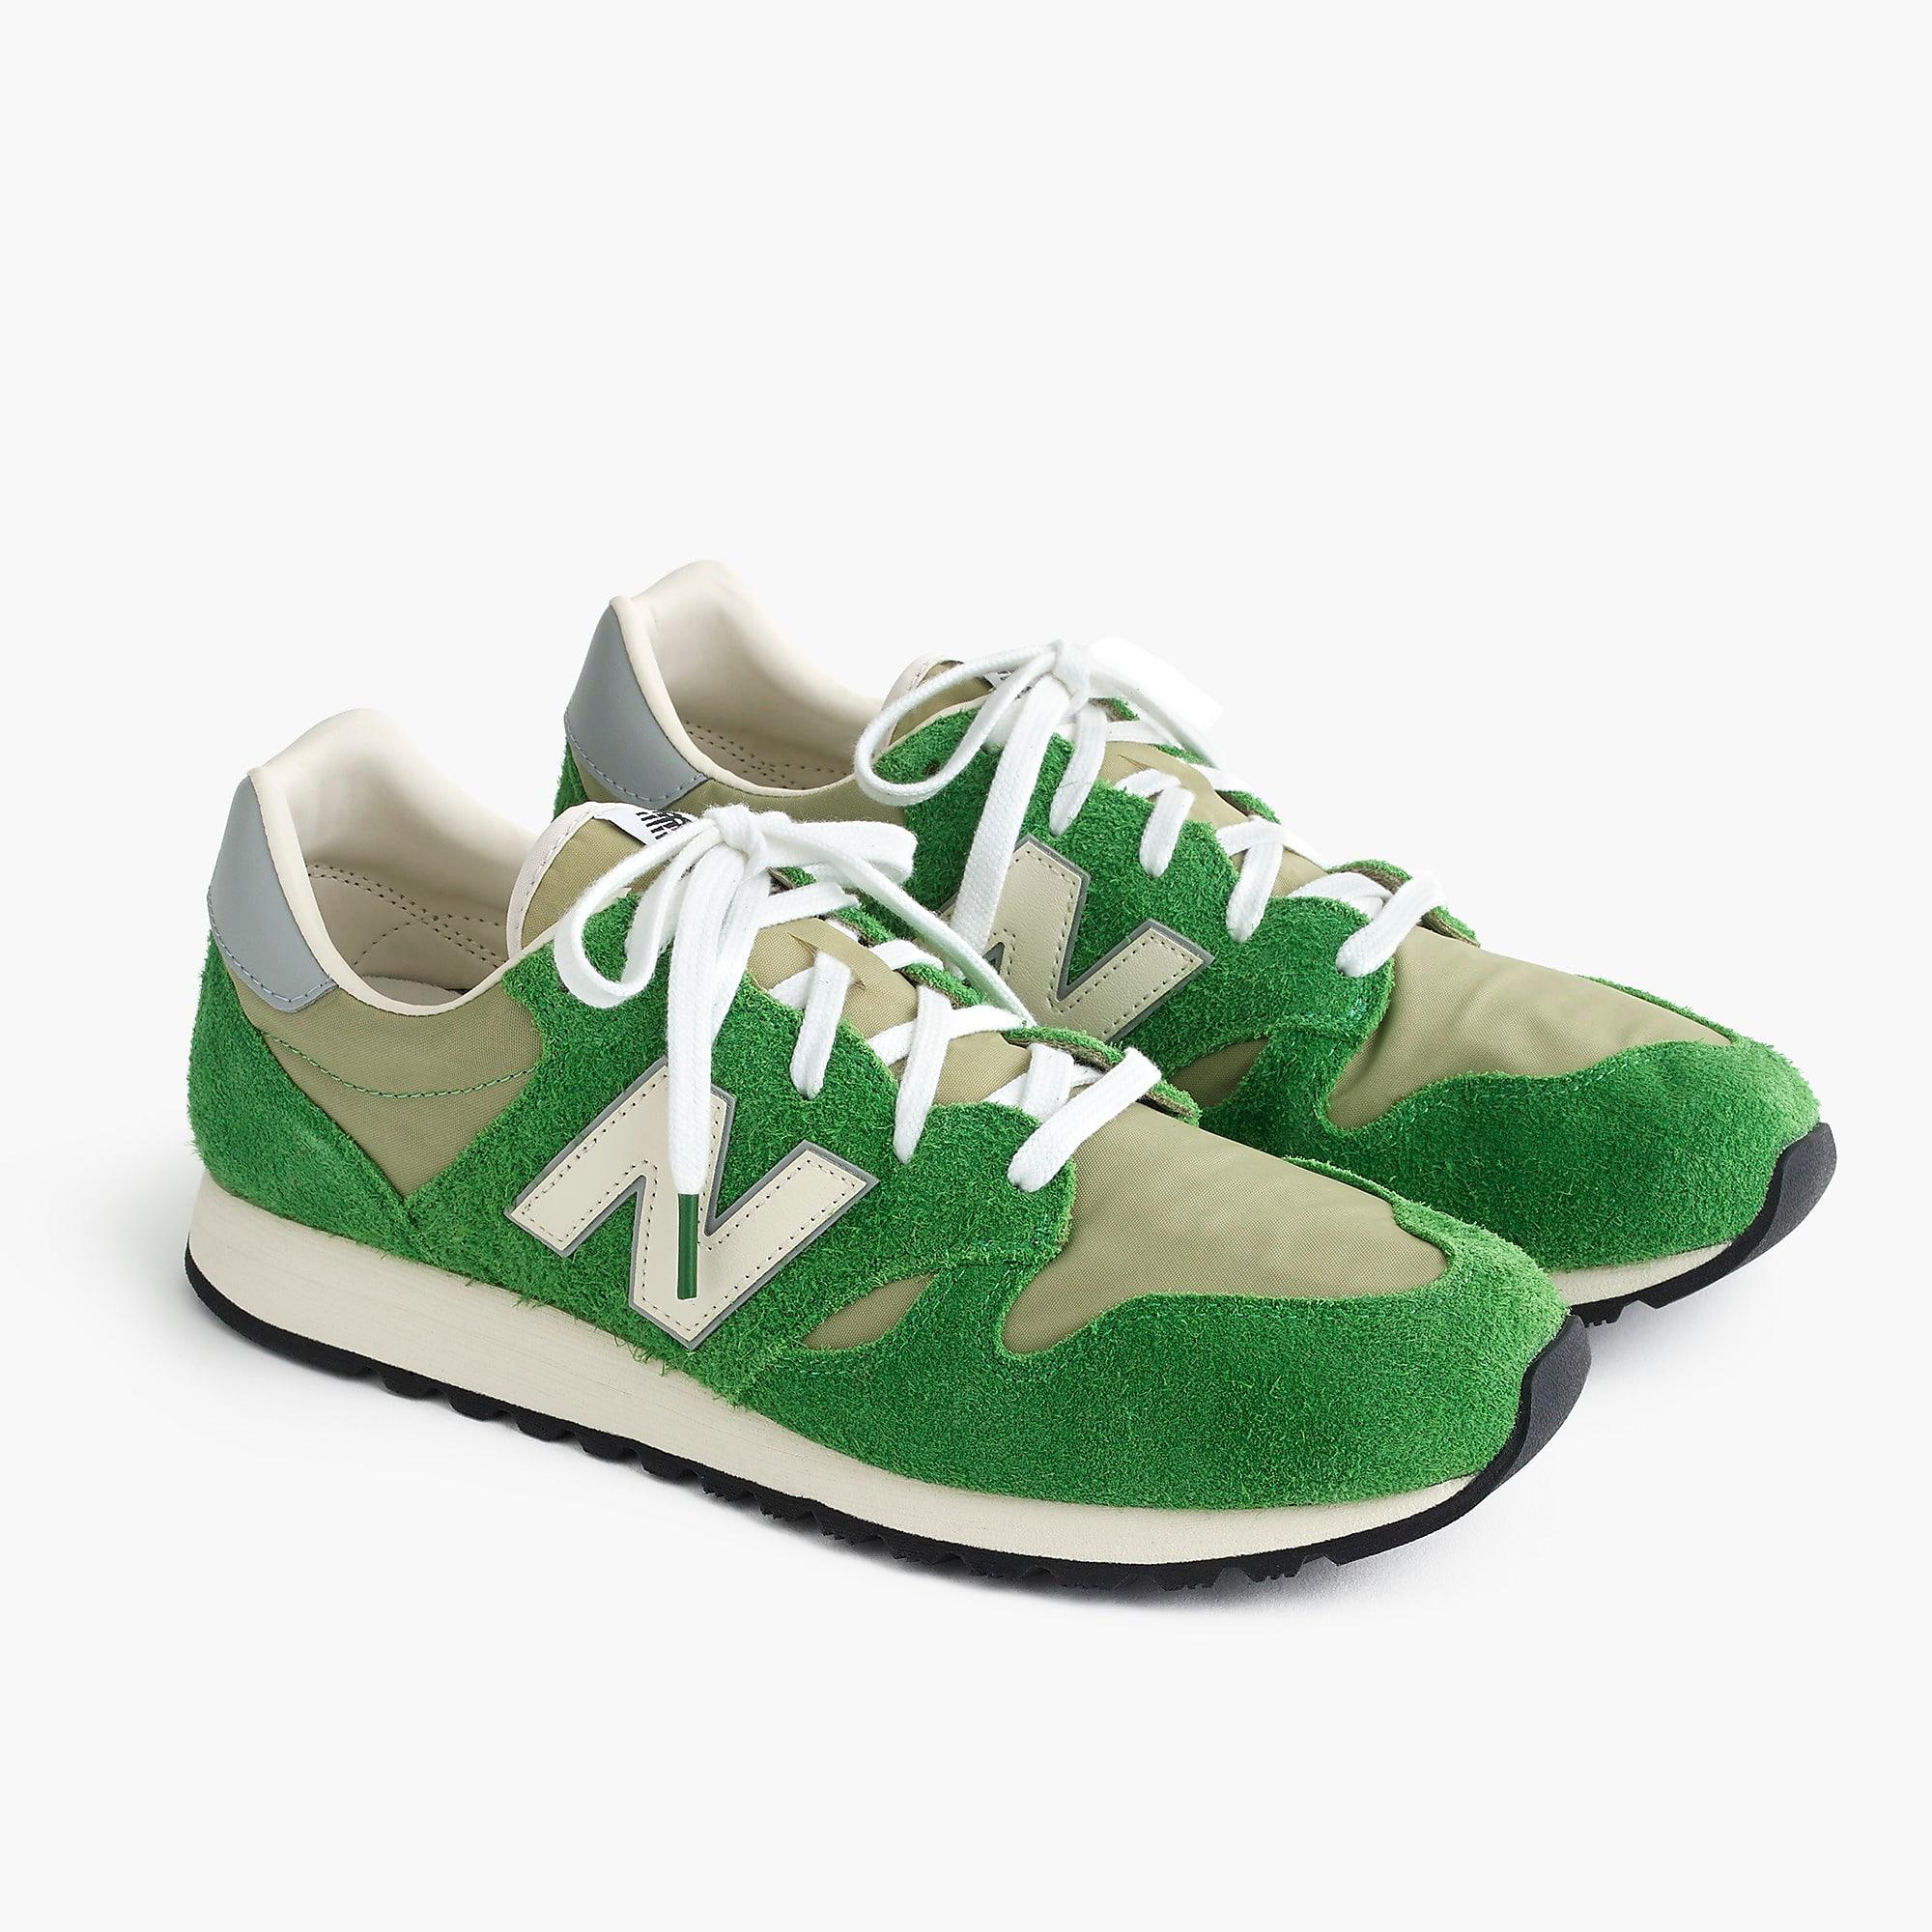 new balance green suede